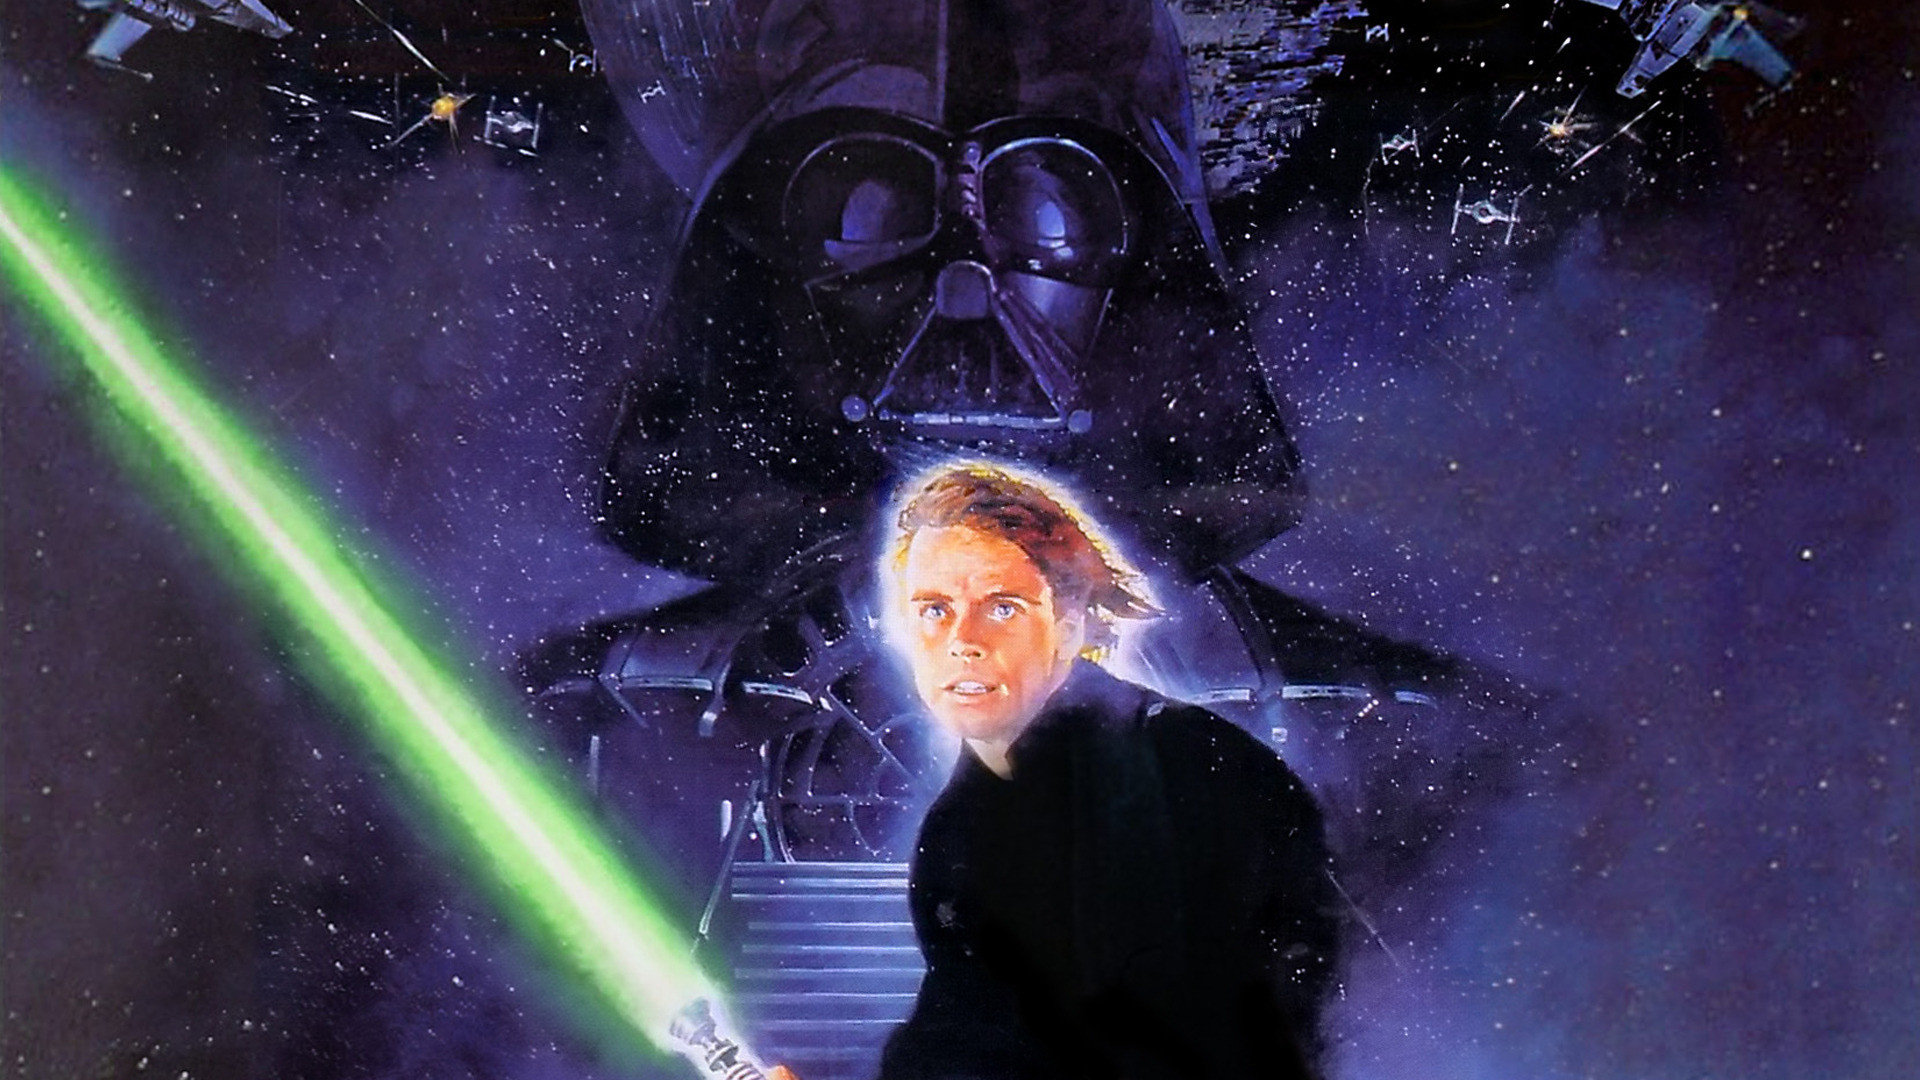 Best Star Wars Episode 6 (VI): Return Of The Jedi background ID:214806 for High Resolution 1080p computer